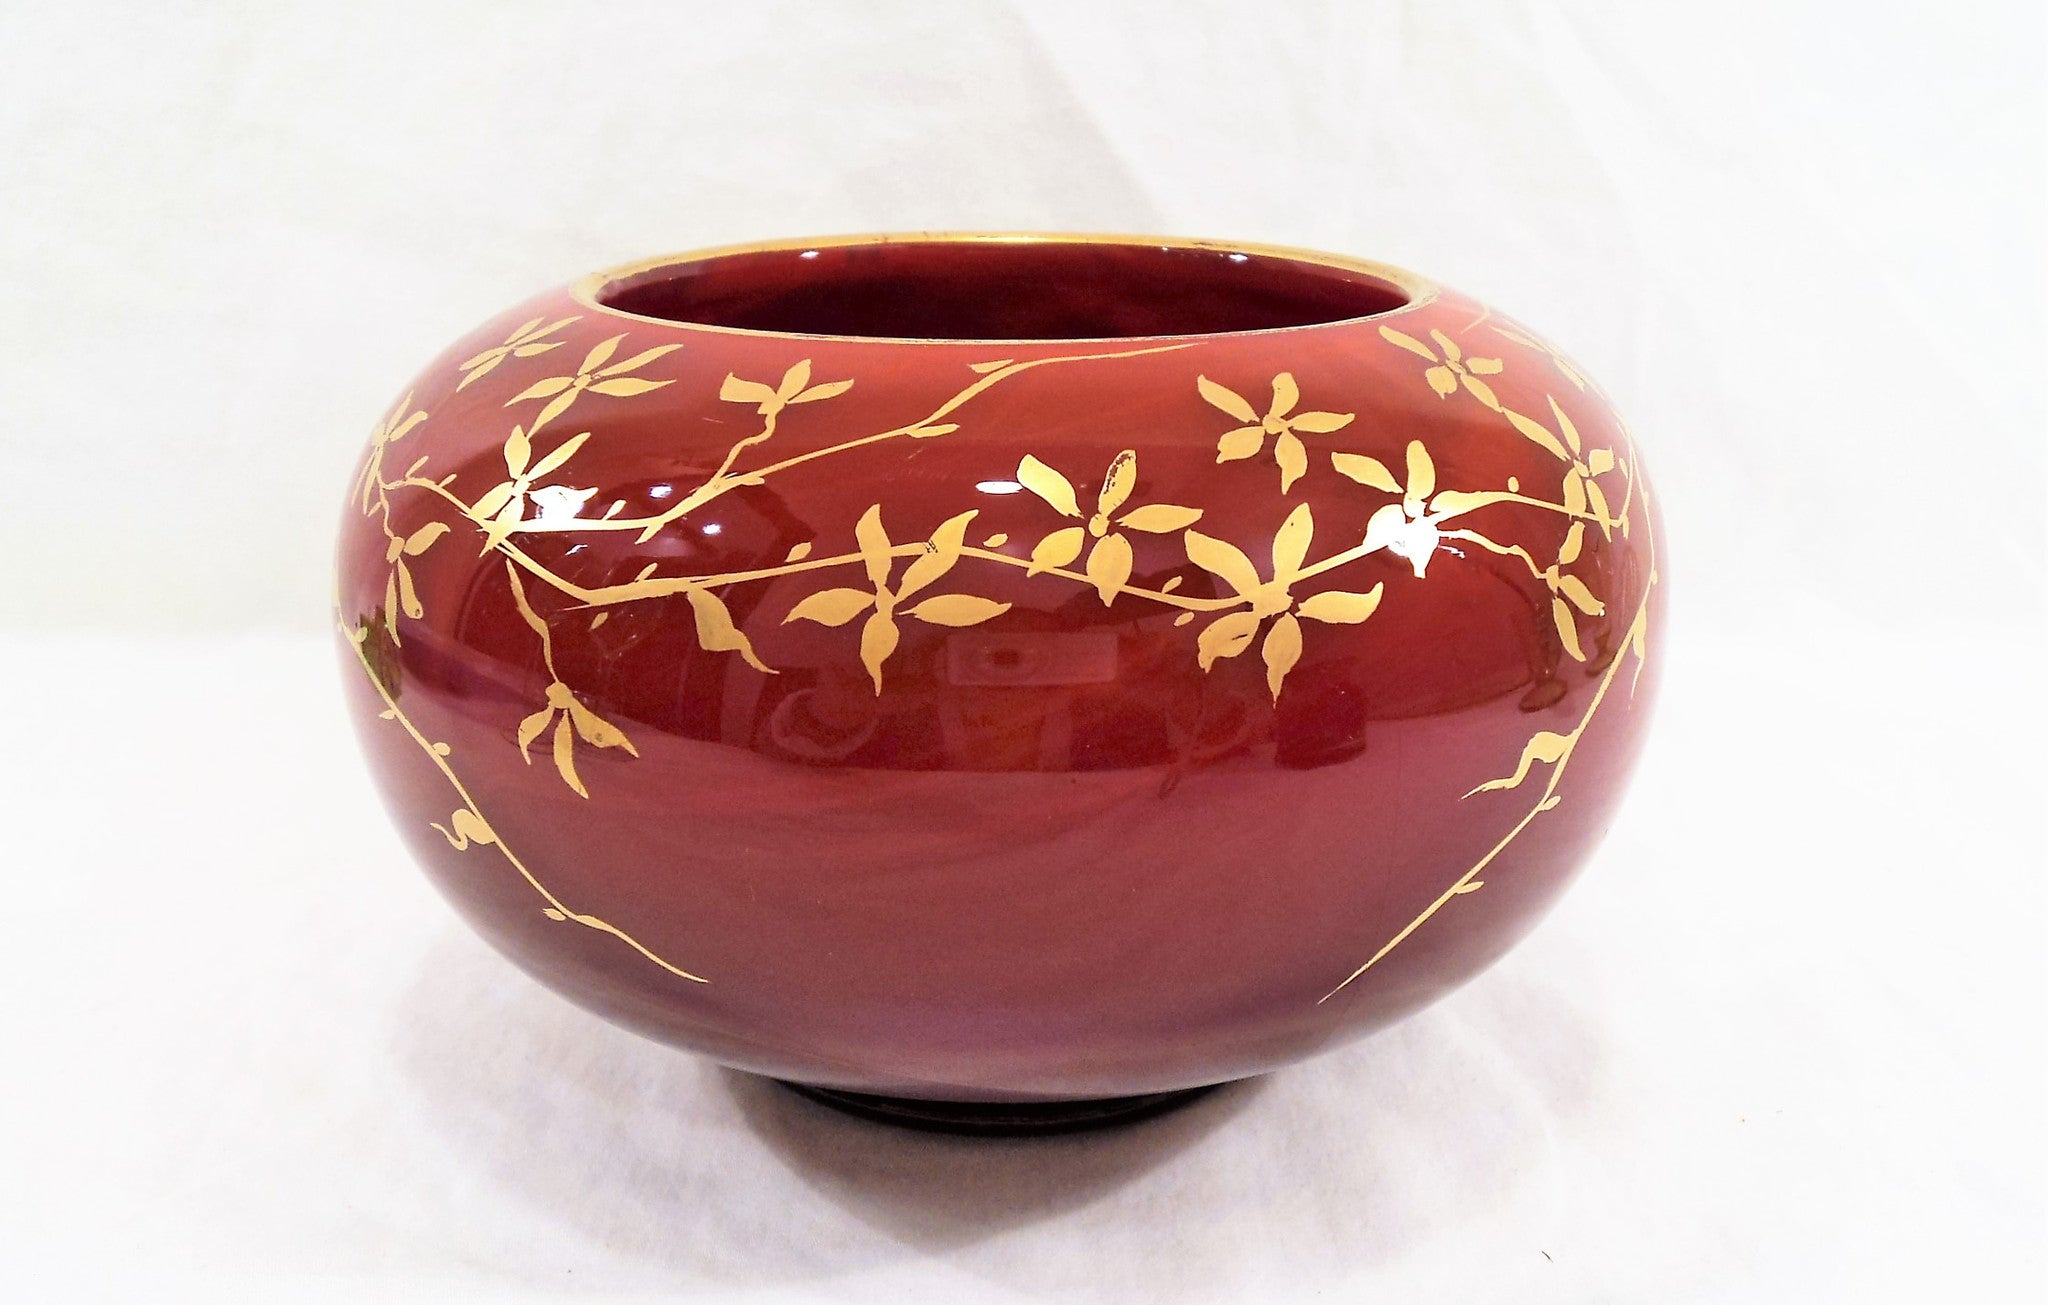 Vintage Molded Red Art Glass Bowl with Gold Accents